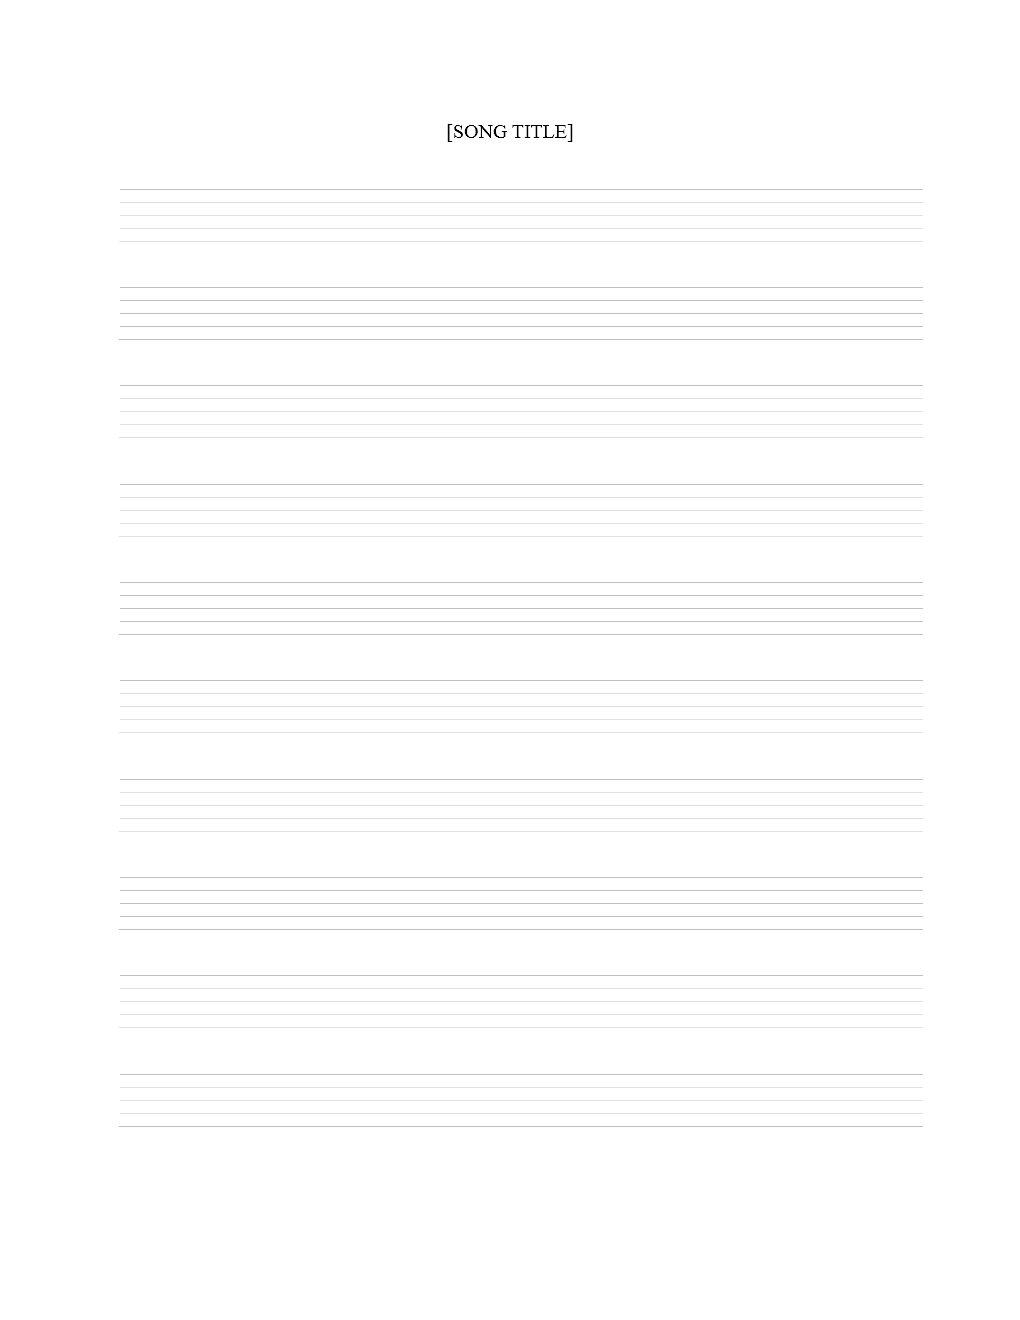 Music Staff Sheet Template - 10 lines